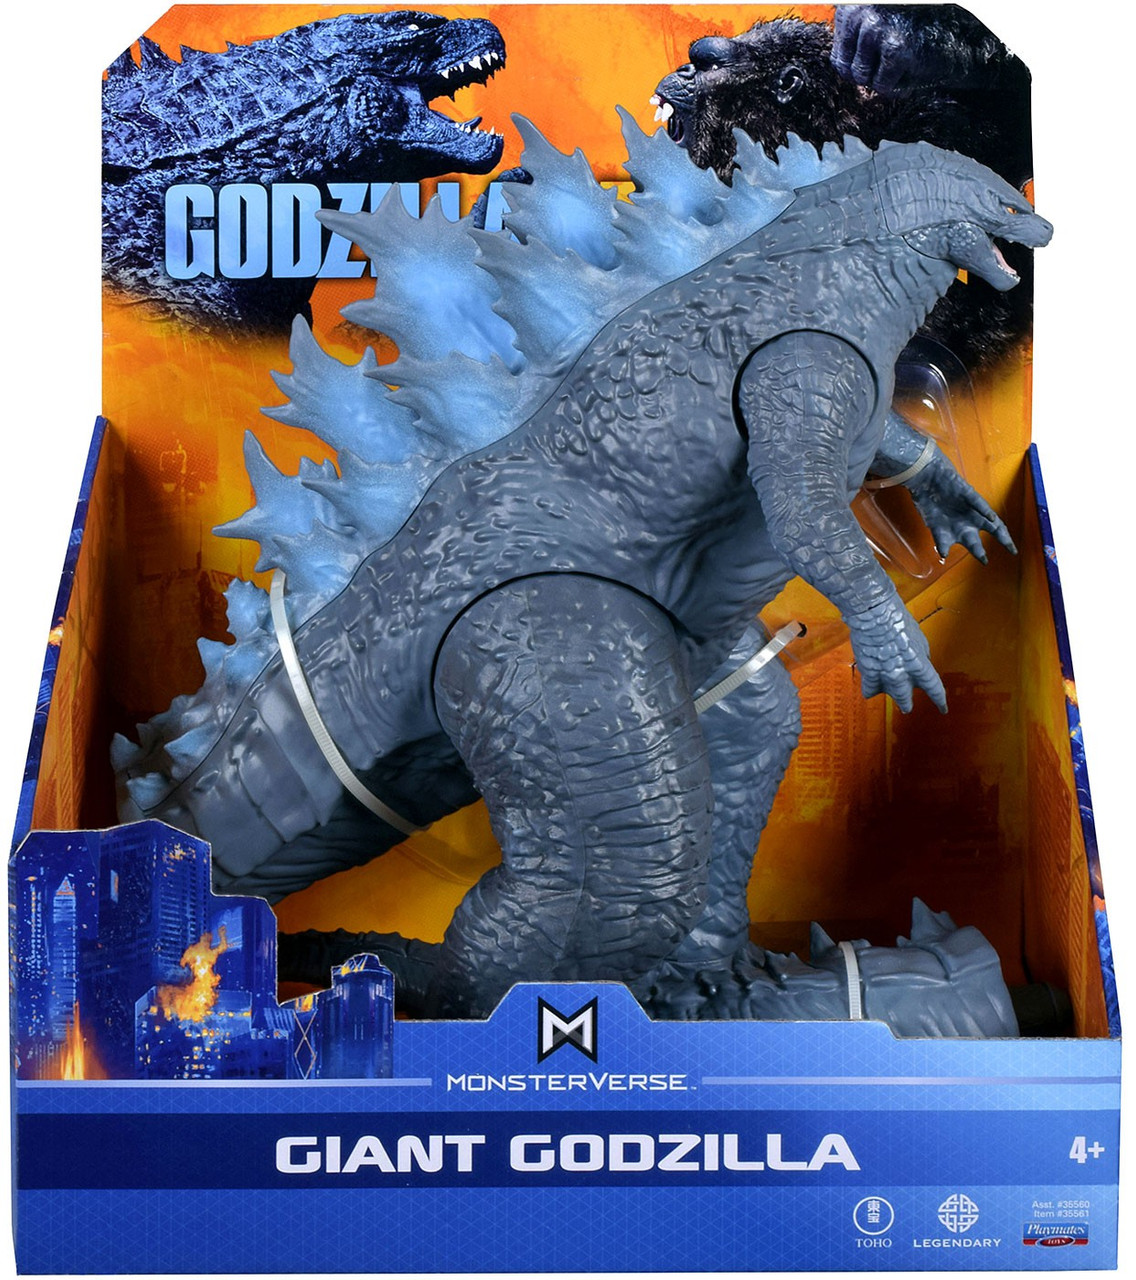 Godzilla Vs Kong Monsterverse Giant Godzilla Exclusive 11 Action Figure Playmates Toywiz